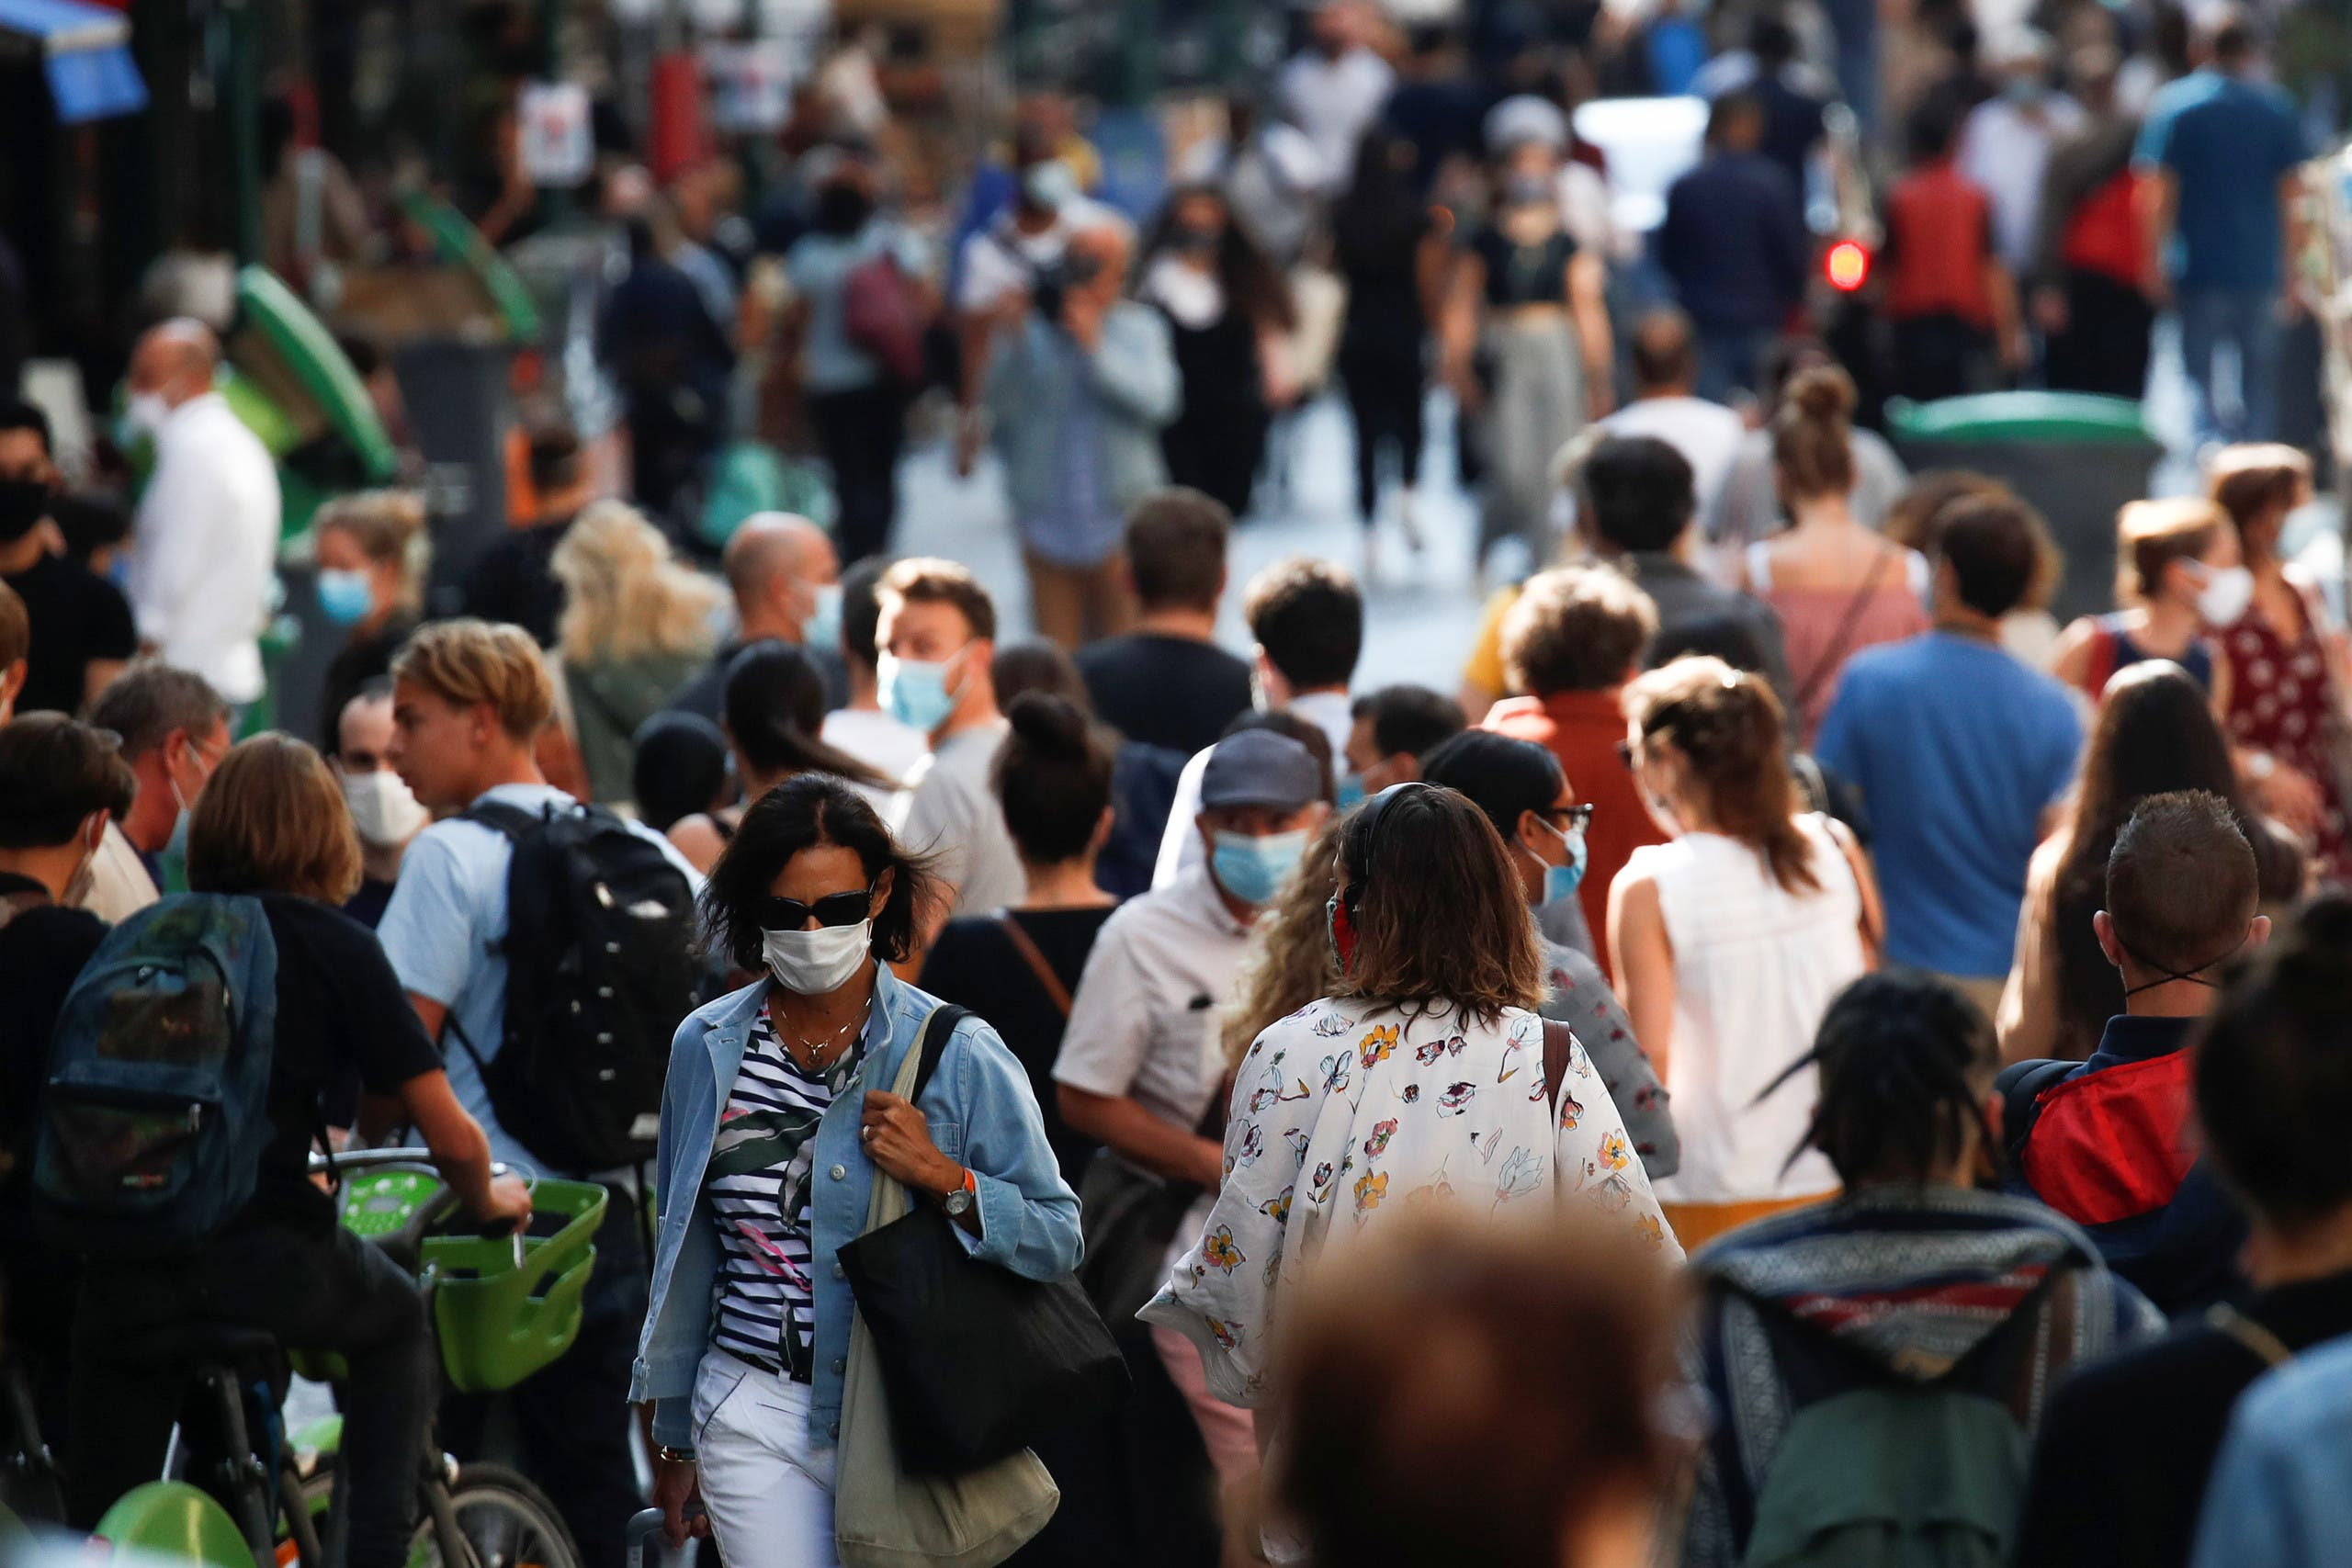 People wearing protective face masks walk in a busy street in Paris. (File photo: Reuters)